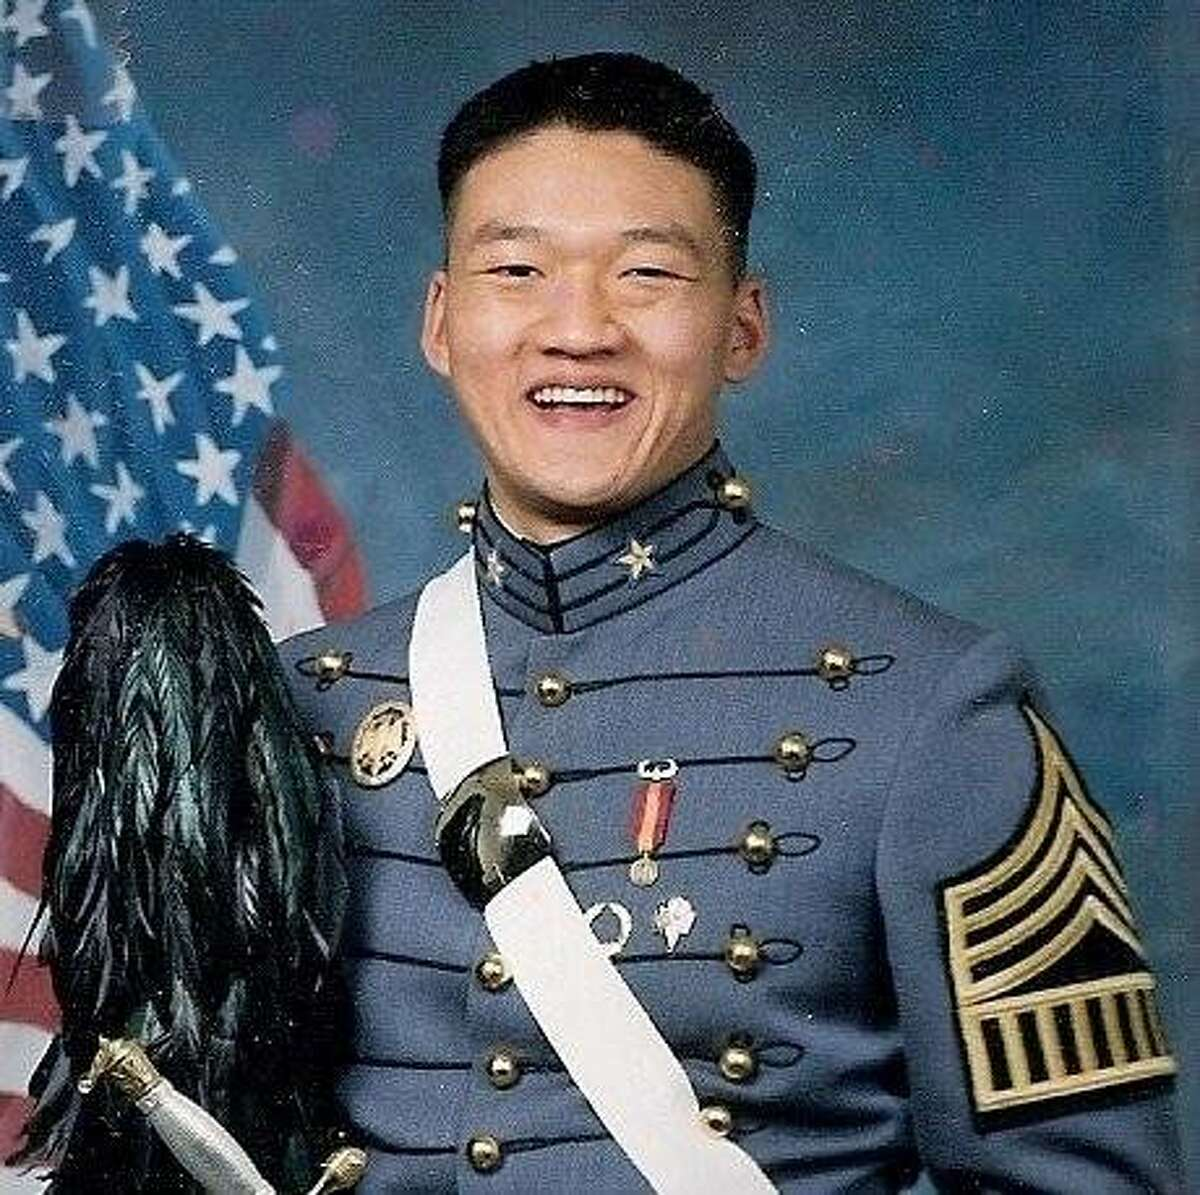 """Army National Guard Lt. Dan Choi as a West Point cadet in 2003. Choi - a gay Arabic-speaking linguist who was dismissed in March after coming out on MSNBC?•s """"Rachel Maddow Show"""" - will be a Grand Marshal in this year's San Francisco Pride Parade."""